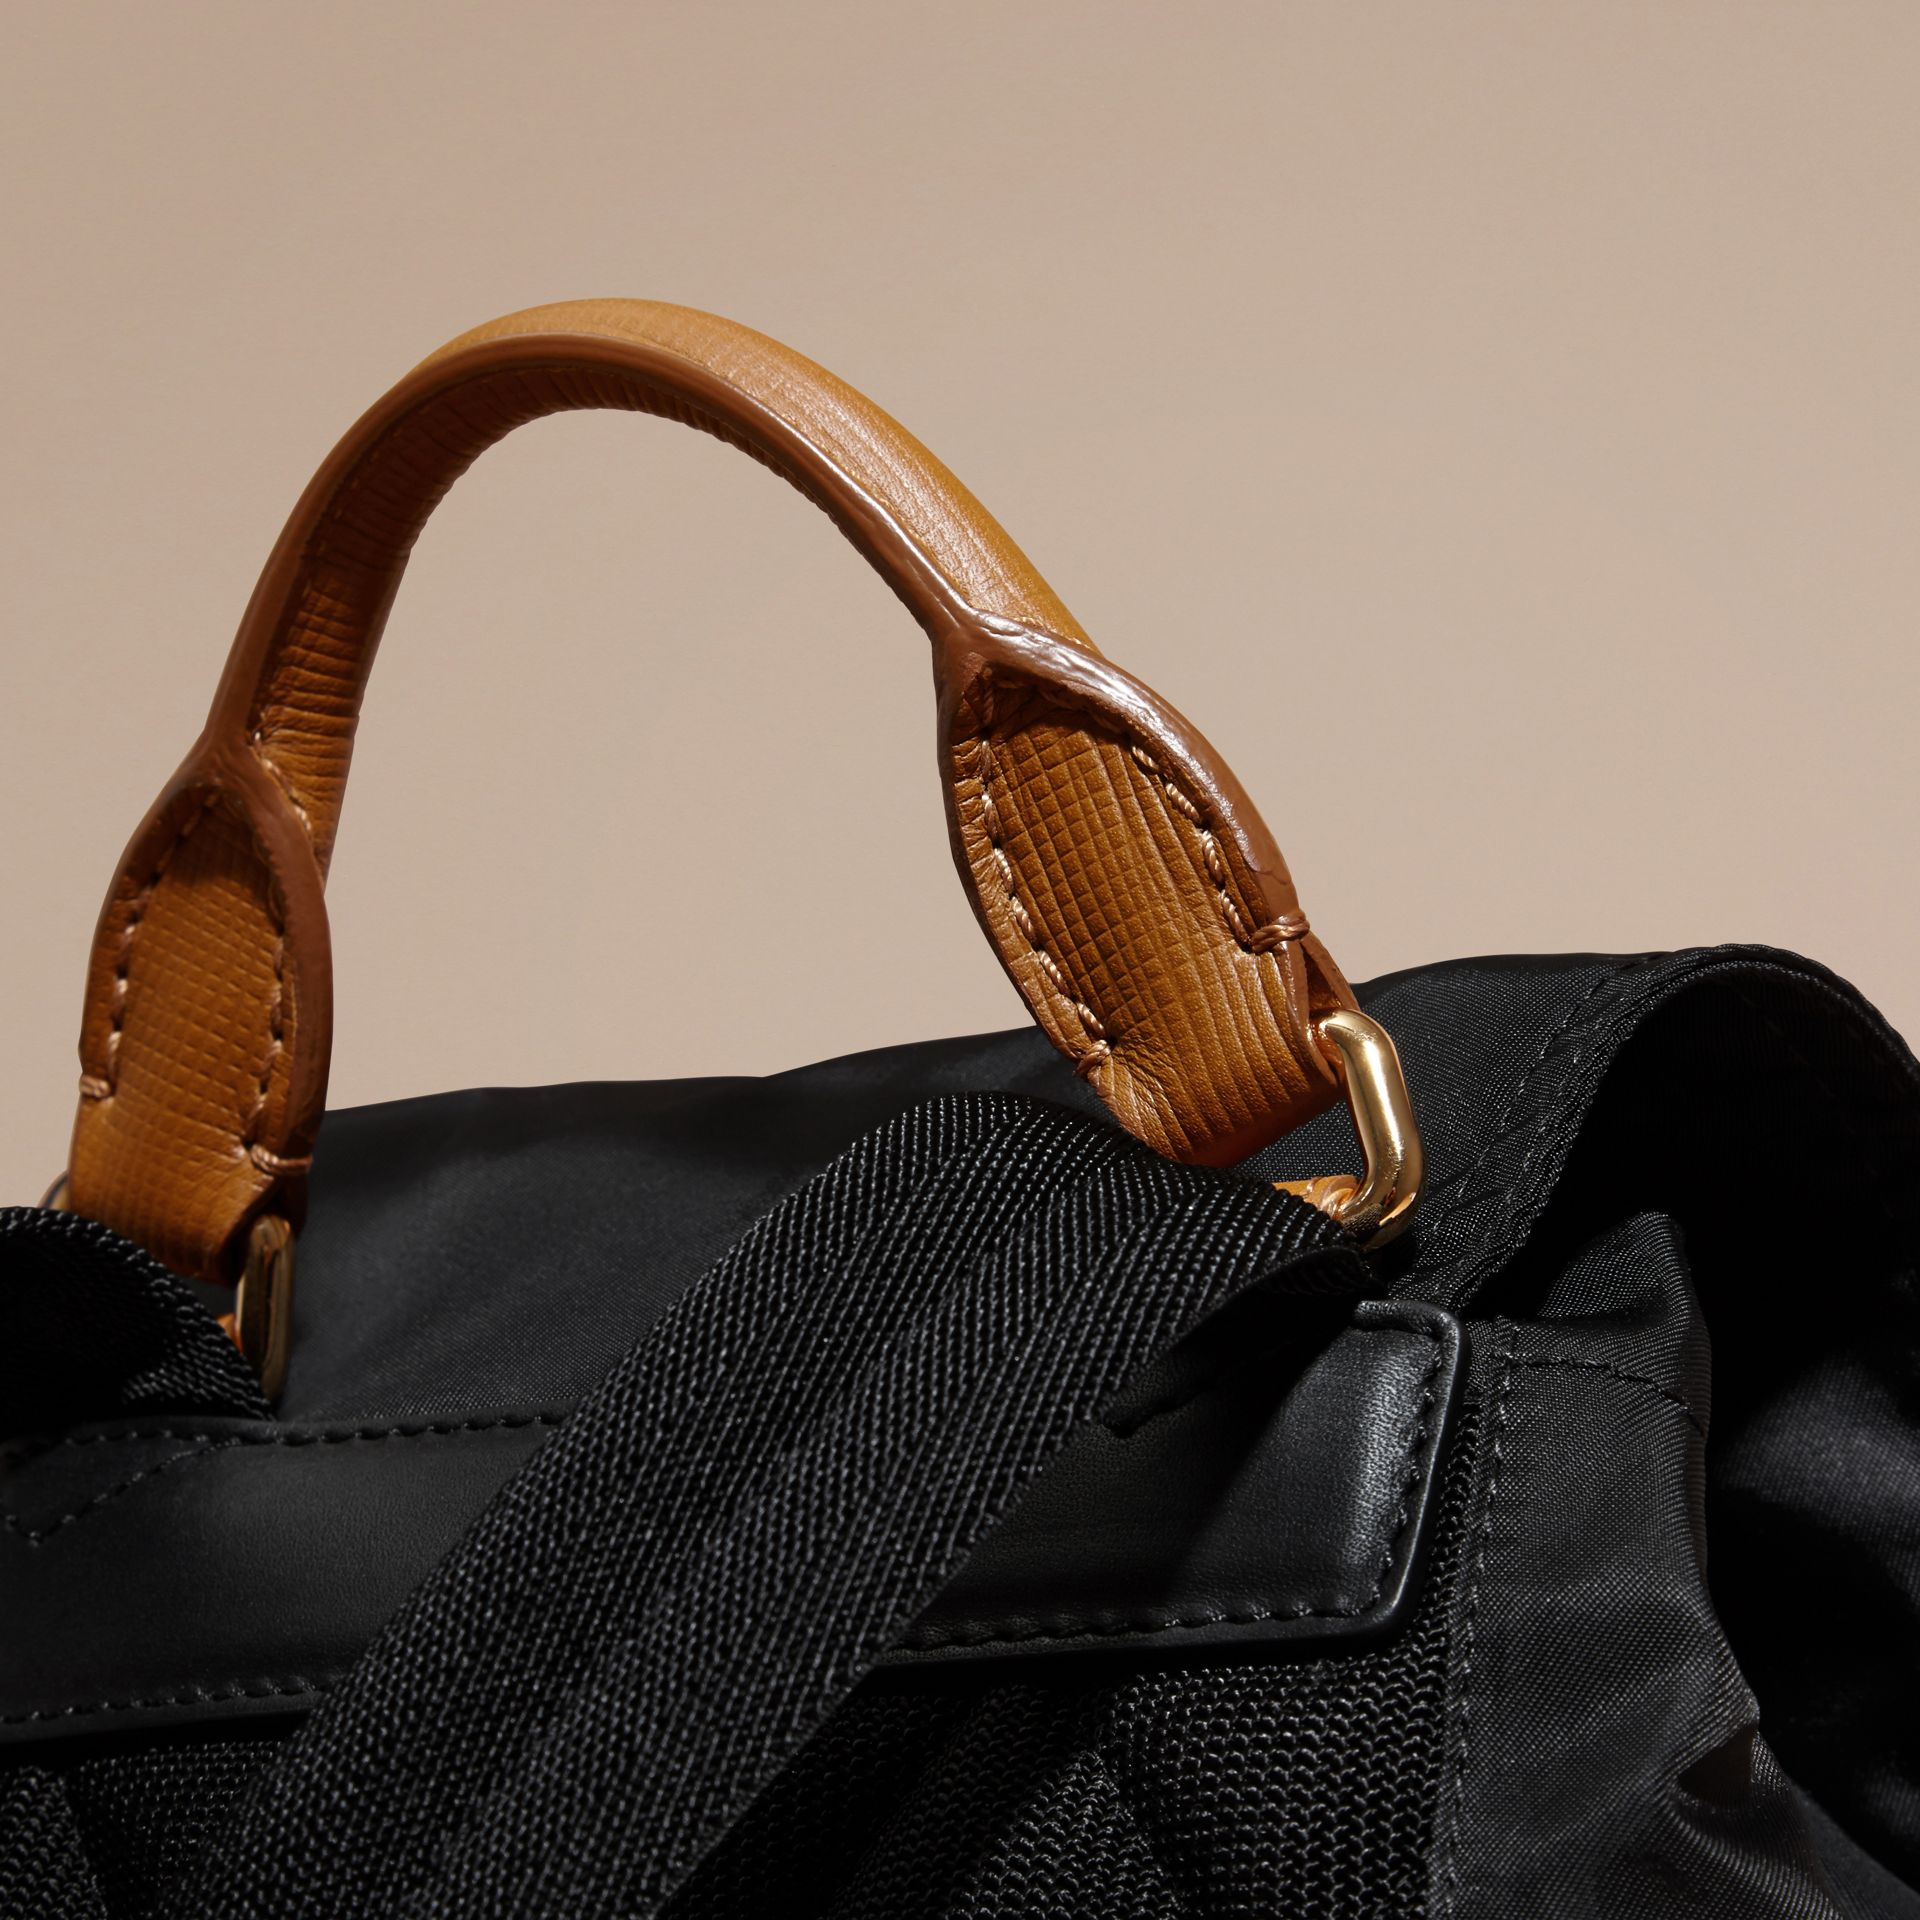 Black The Medium Rucksack in Technical Nylon and Leather Black - gallery image 5